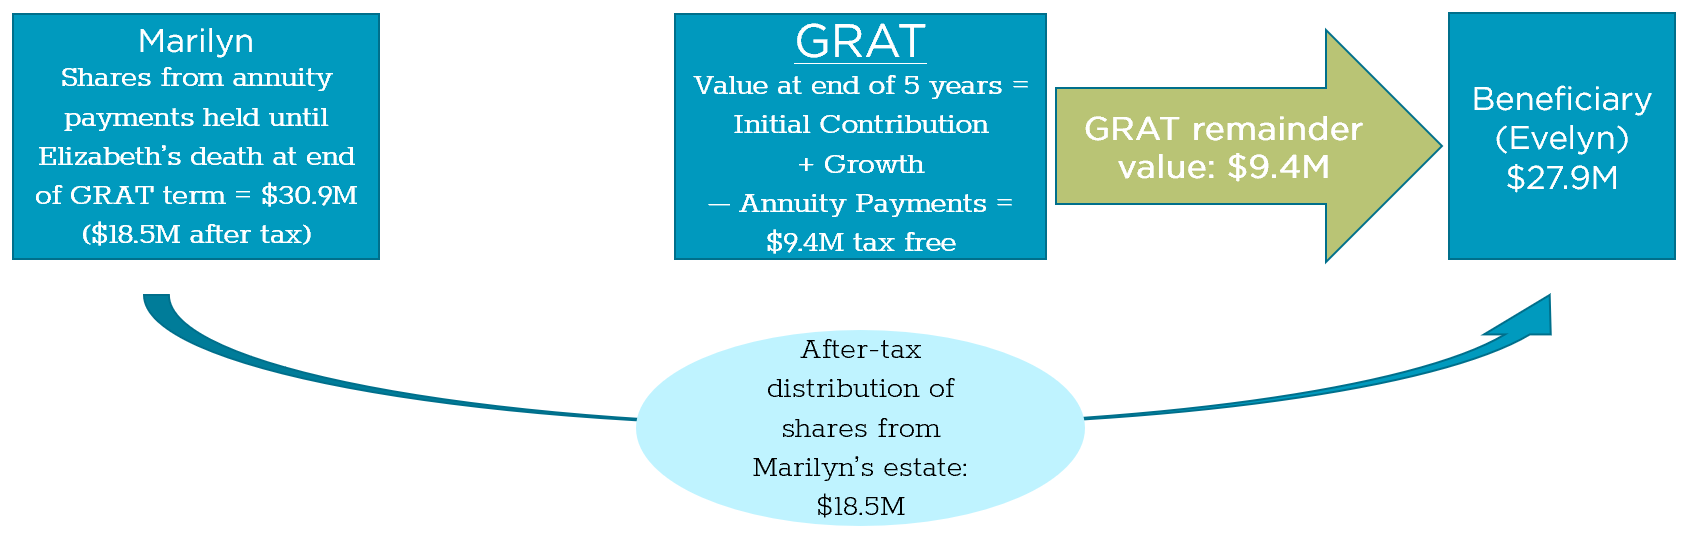 chart showing an example of flow of shares from the annuity payments, growth, and GRAT remainder value after the death of a grantor